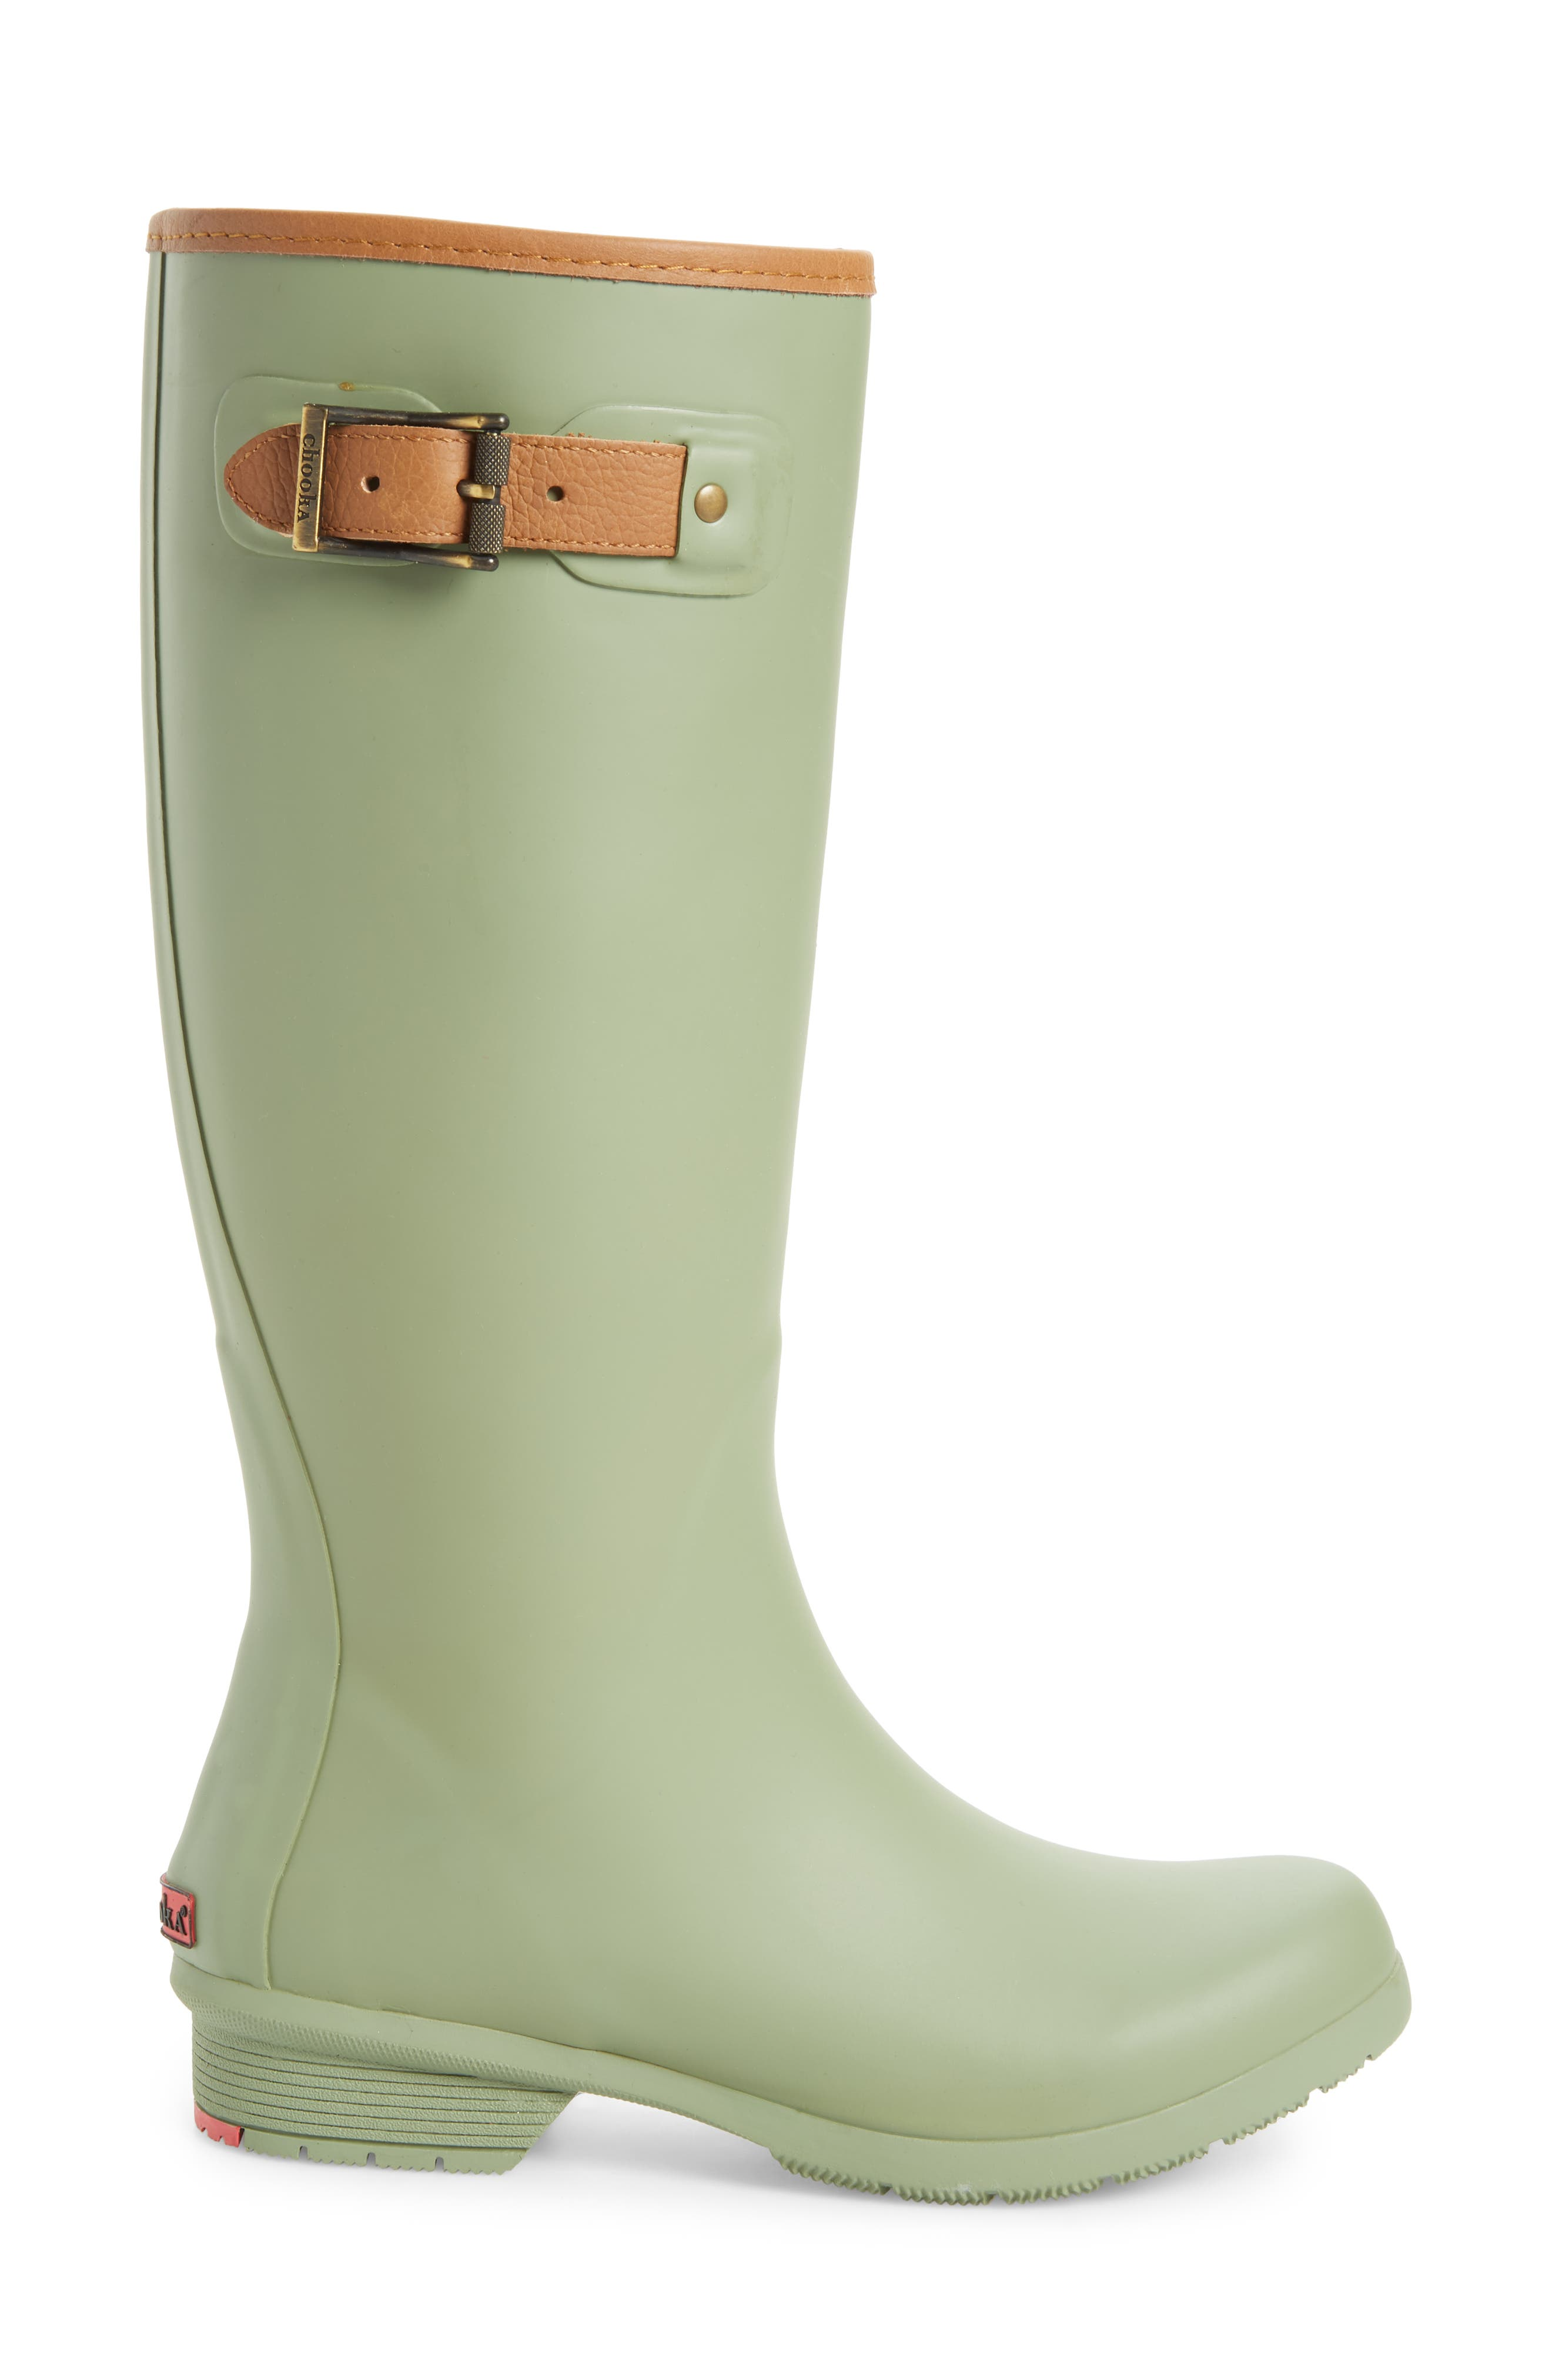 City Tall Rain Boot,                             Alternate thumbnail 3, color,                             303